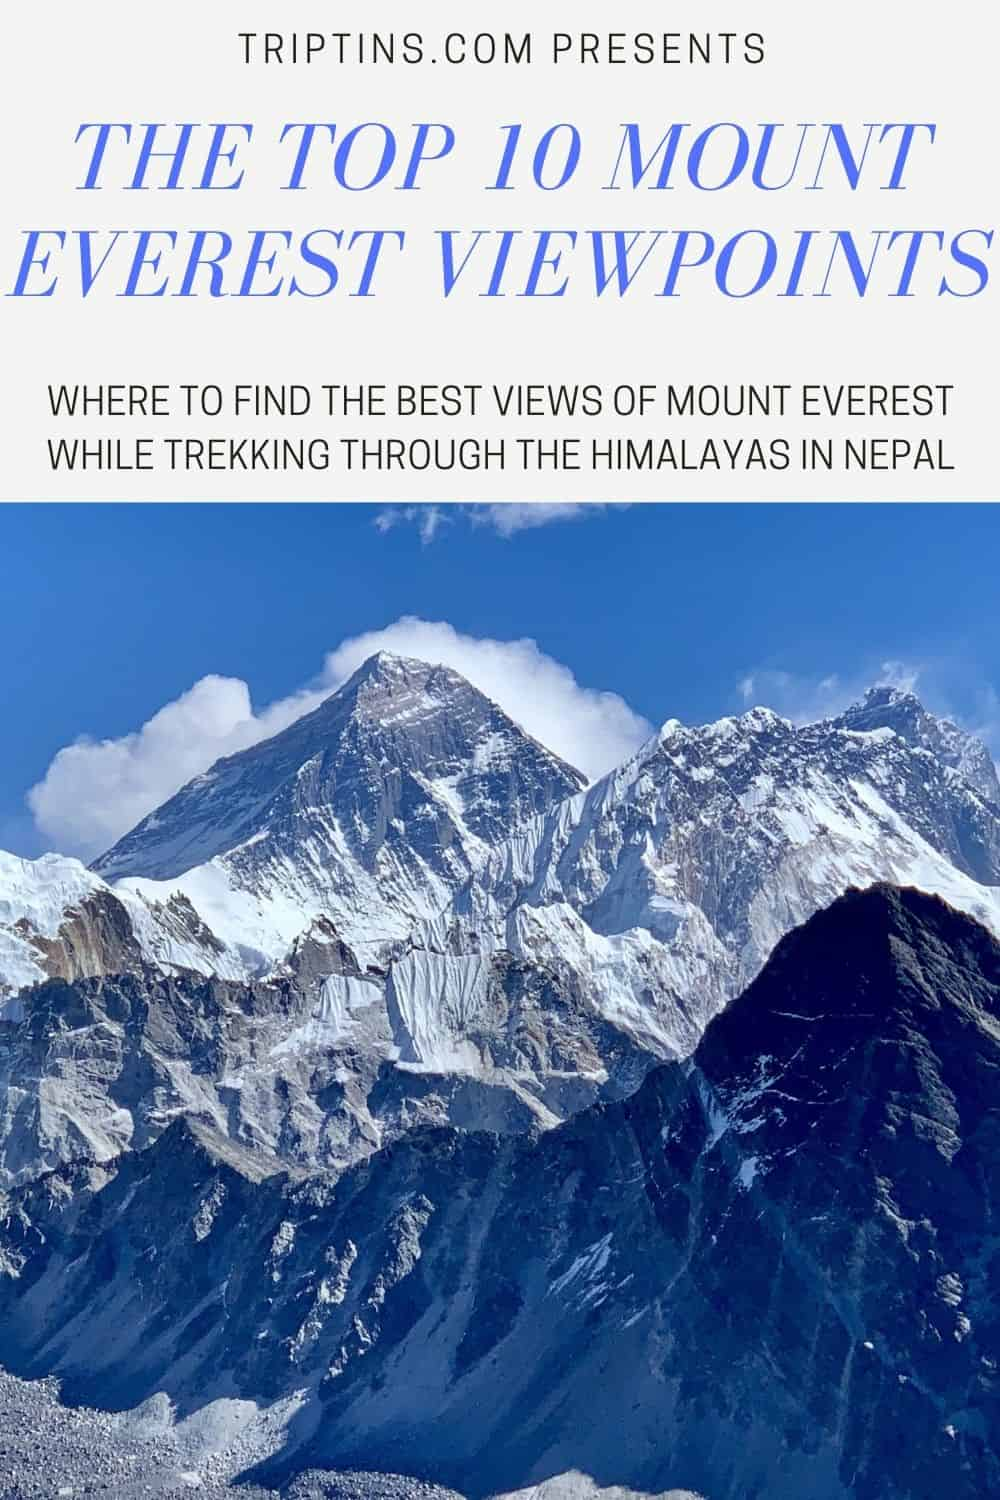 Mount Everest Viewpoints